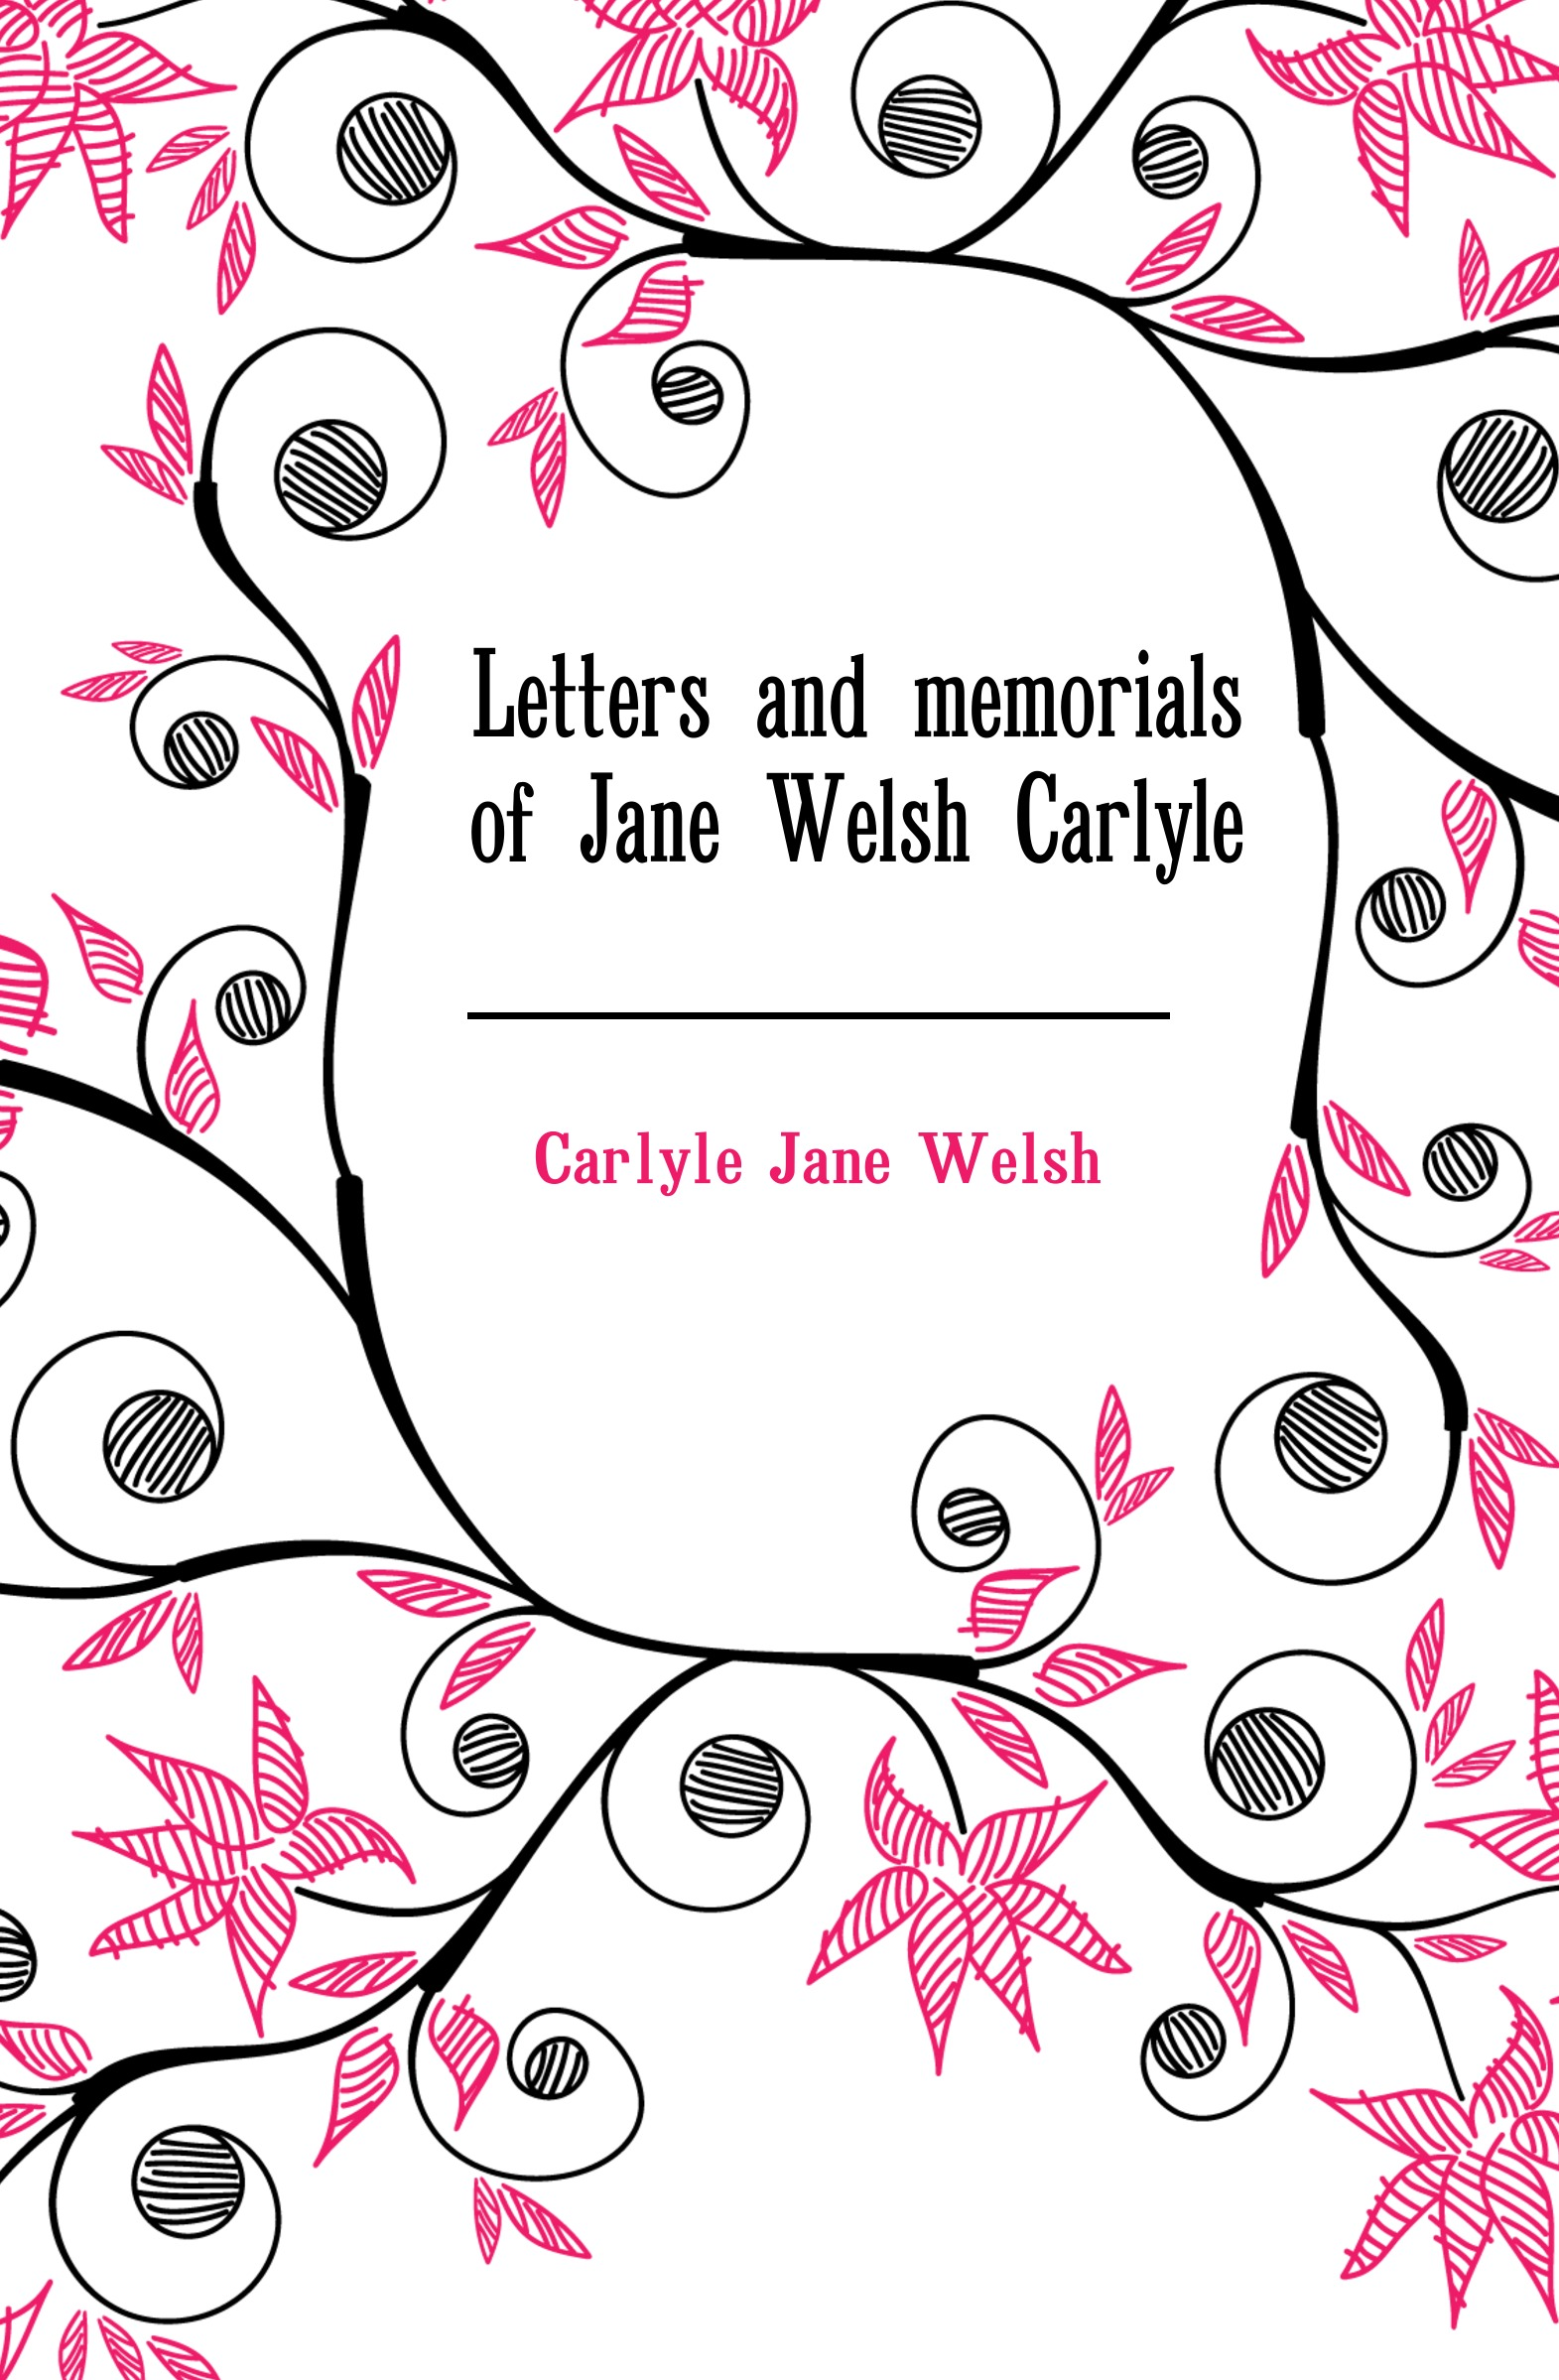 Carlyle Jane Welsh Letters and memorials of Jane Welsh Carlyle thomas and jane carlyle